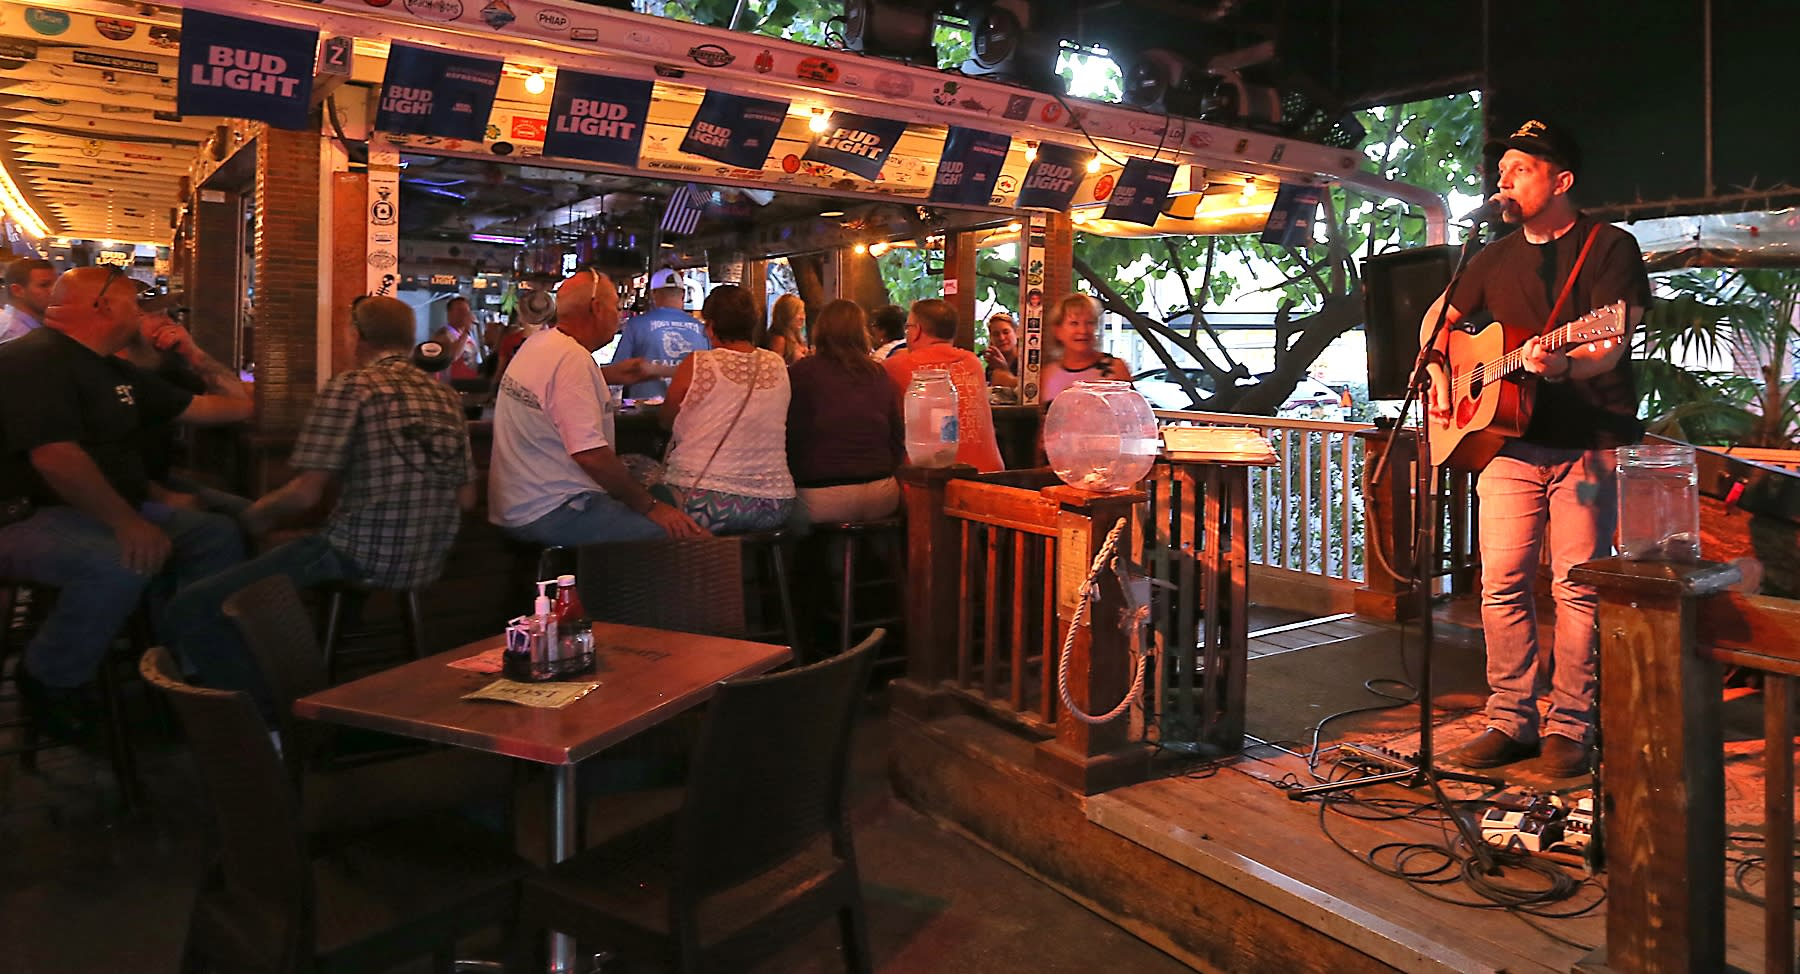 Whether you're heading to or from watching the sun dip into the sea at Mallory Square, starting a night of barhopping or looking for a spot to rest your feet,  the Hog's Breath Saloon is the perfect place to sip some beers and pleasure your ears in laid back Key West style.